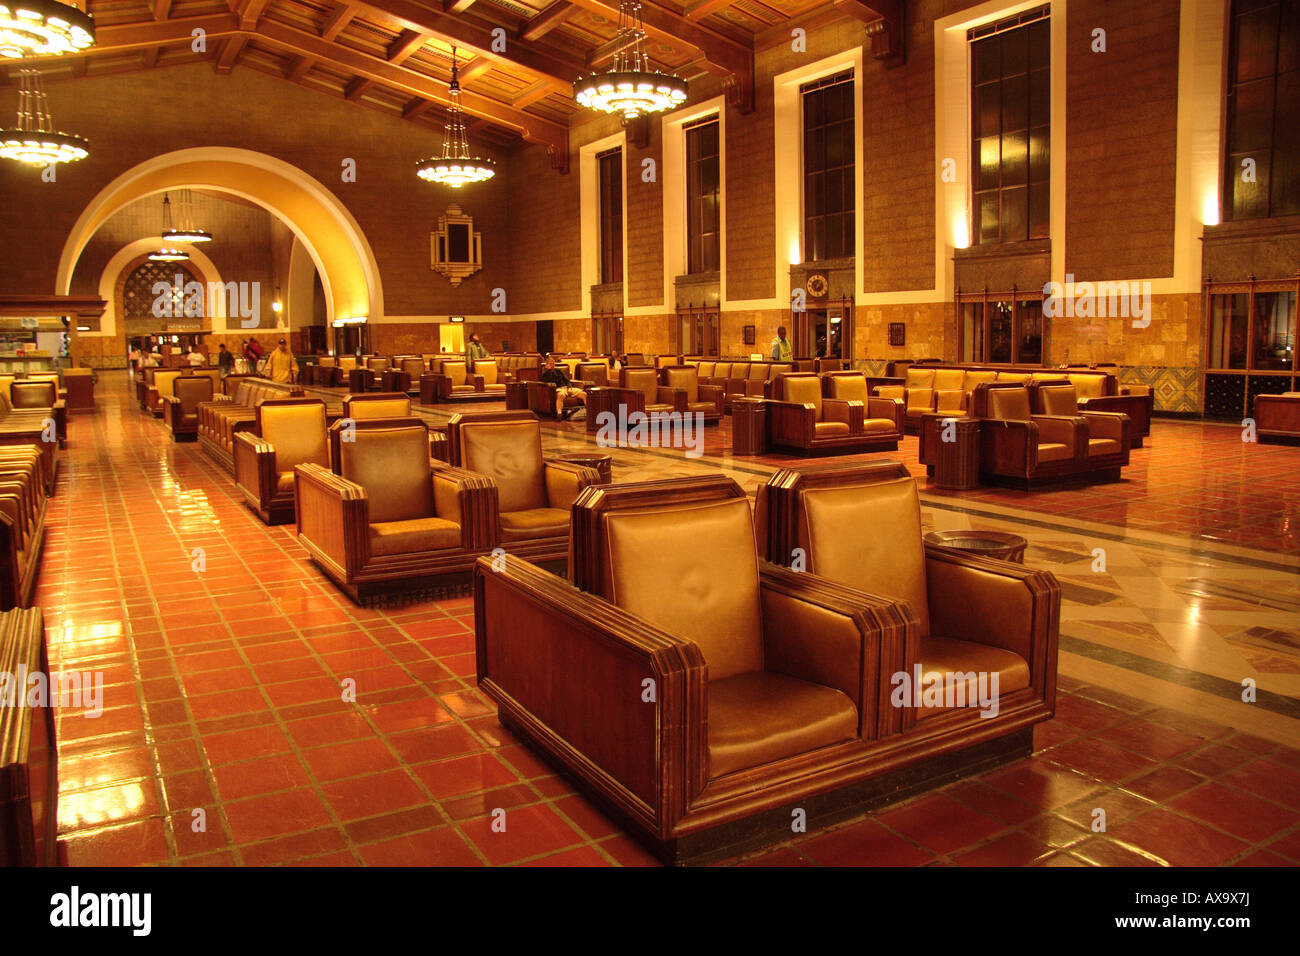 Interior Los Angeles Union Station Lobby 1940's decor Stock Photo